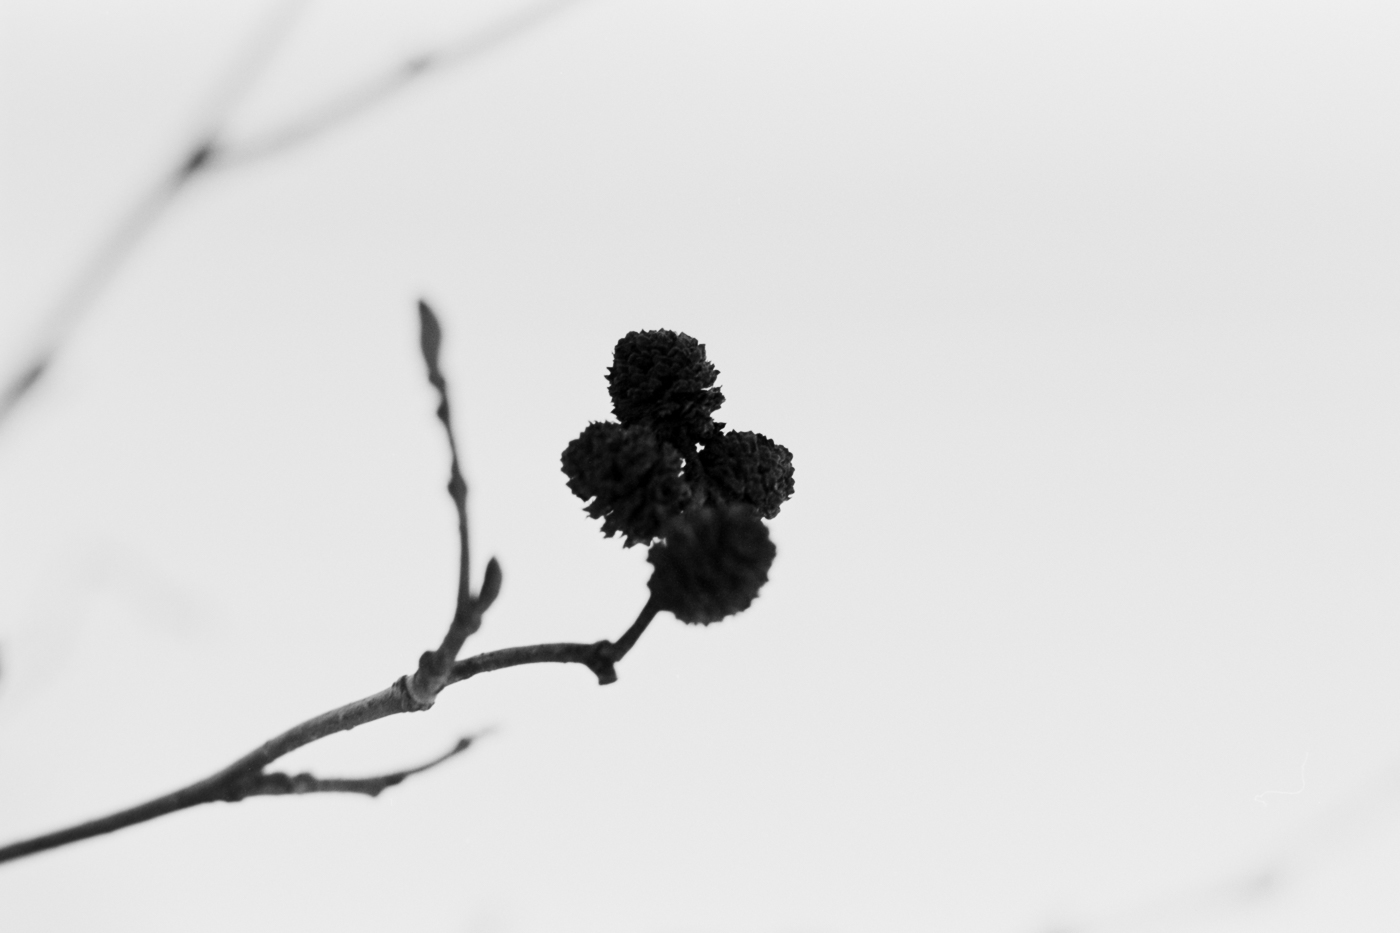 winter flower black and white